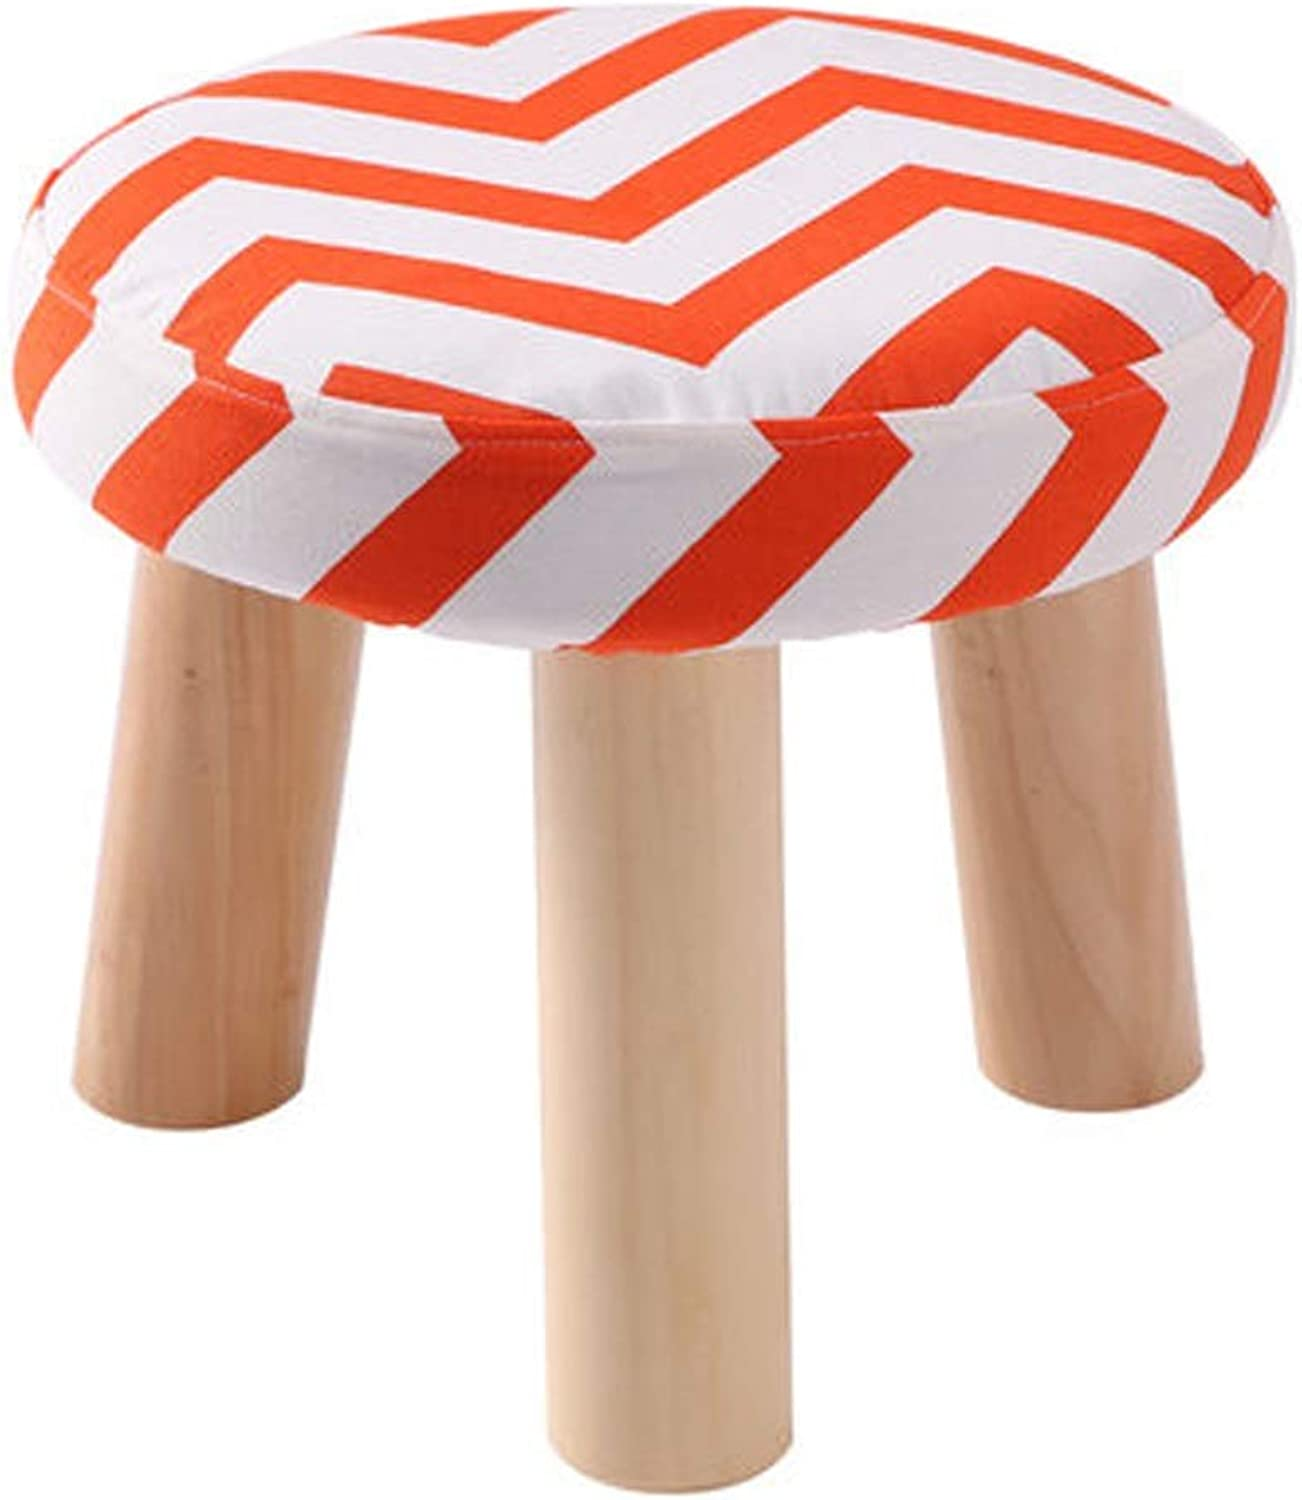 AINIYF Classic Round Foot Stool Round Padded Foot Rest Stool Wooden Legs Linen Fabric Cover with Wooden Legs (3 Leg Stands) (color   orange)